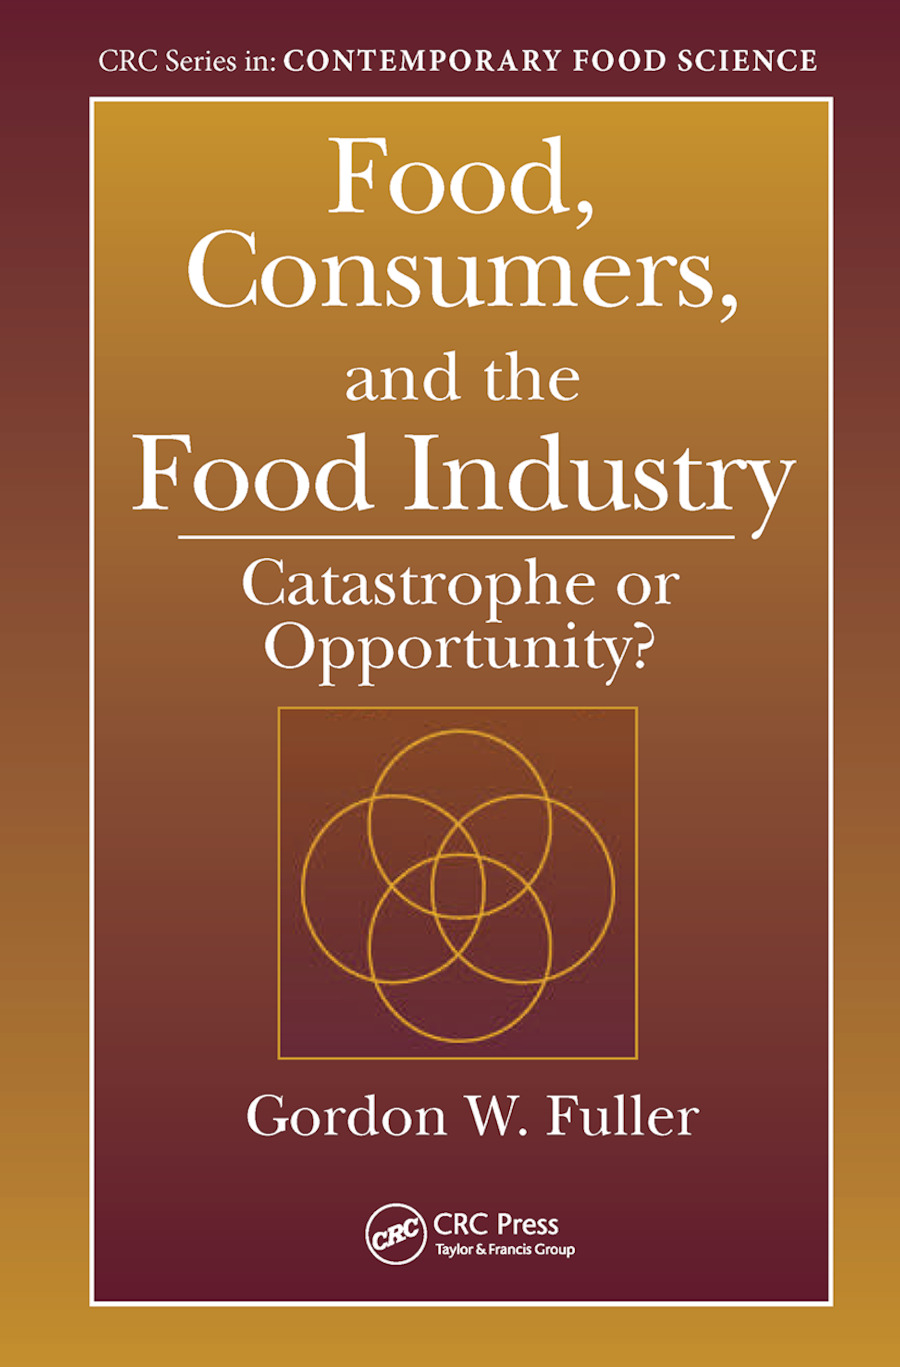 Food, Consumers, and the Food Industry